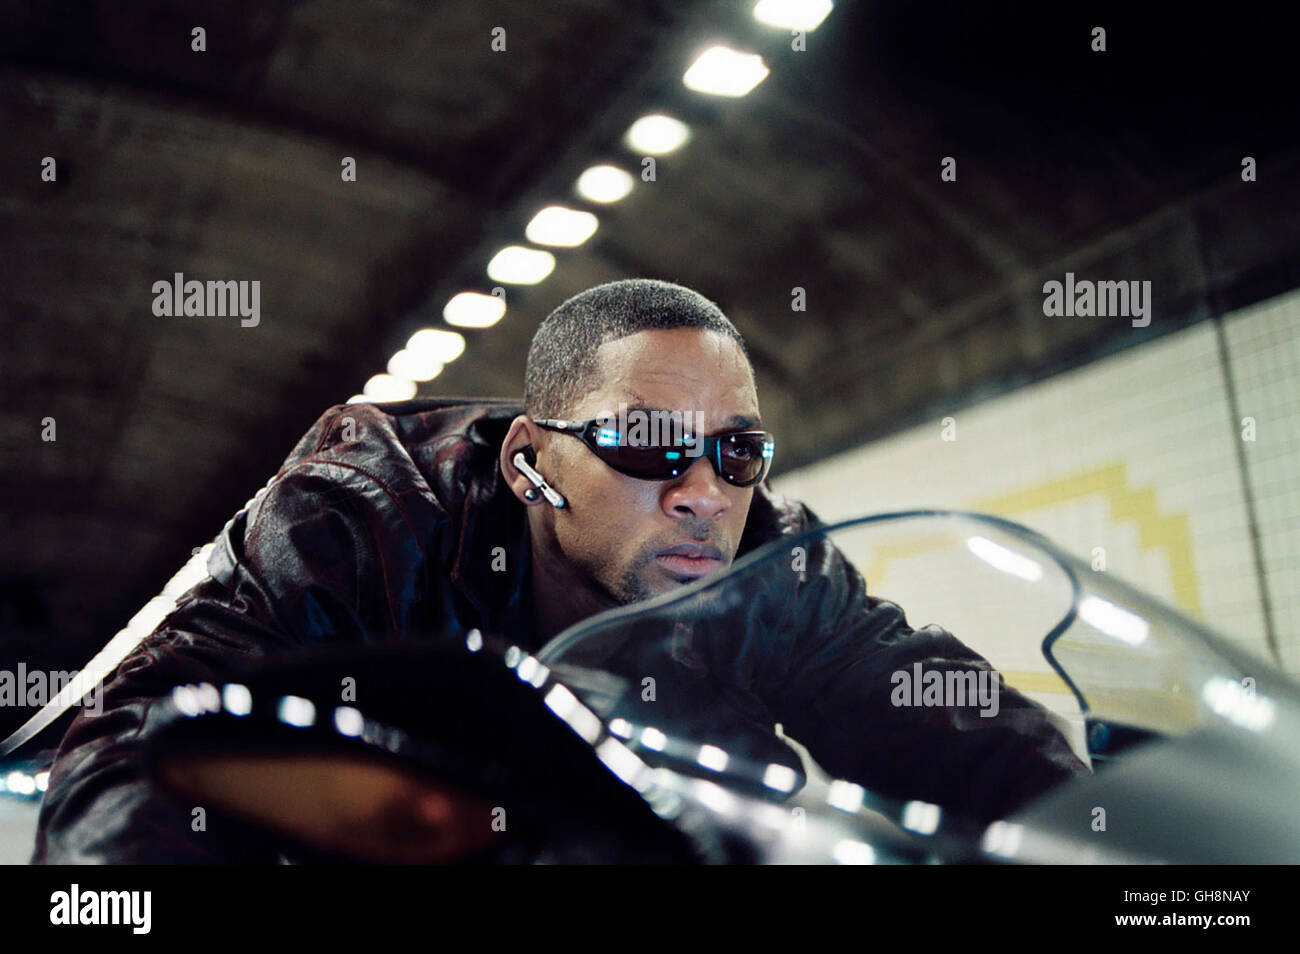 I Robot I Robot Will Smith 2004 Del Spooner Stock Photos I Robot Will